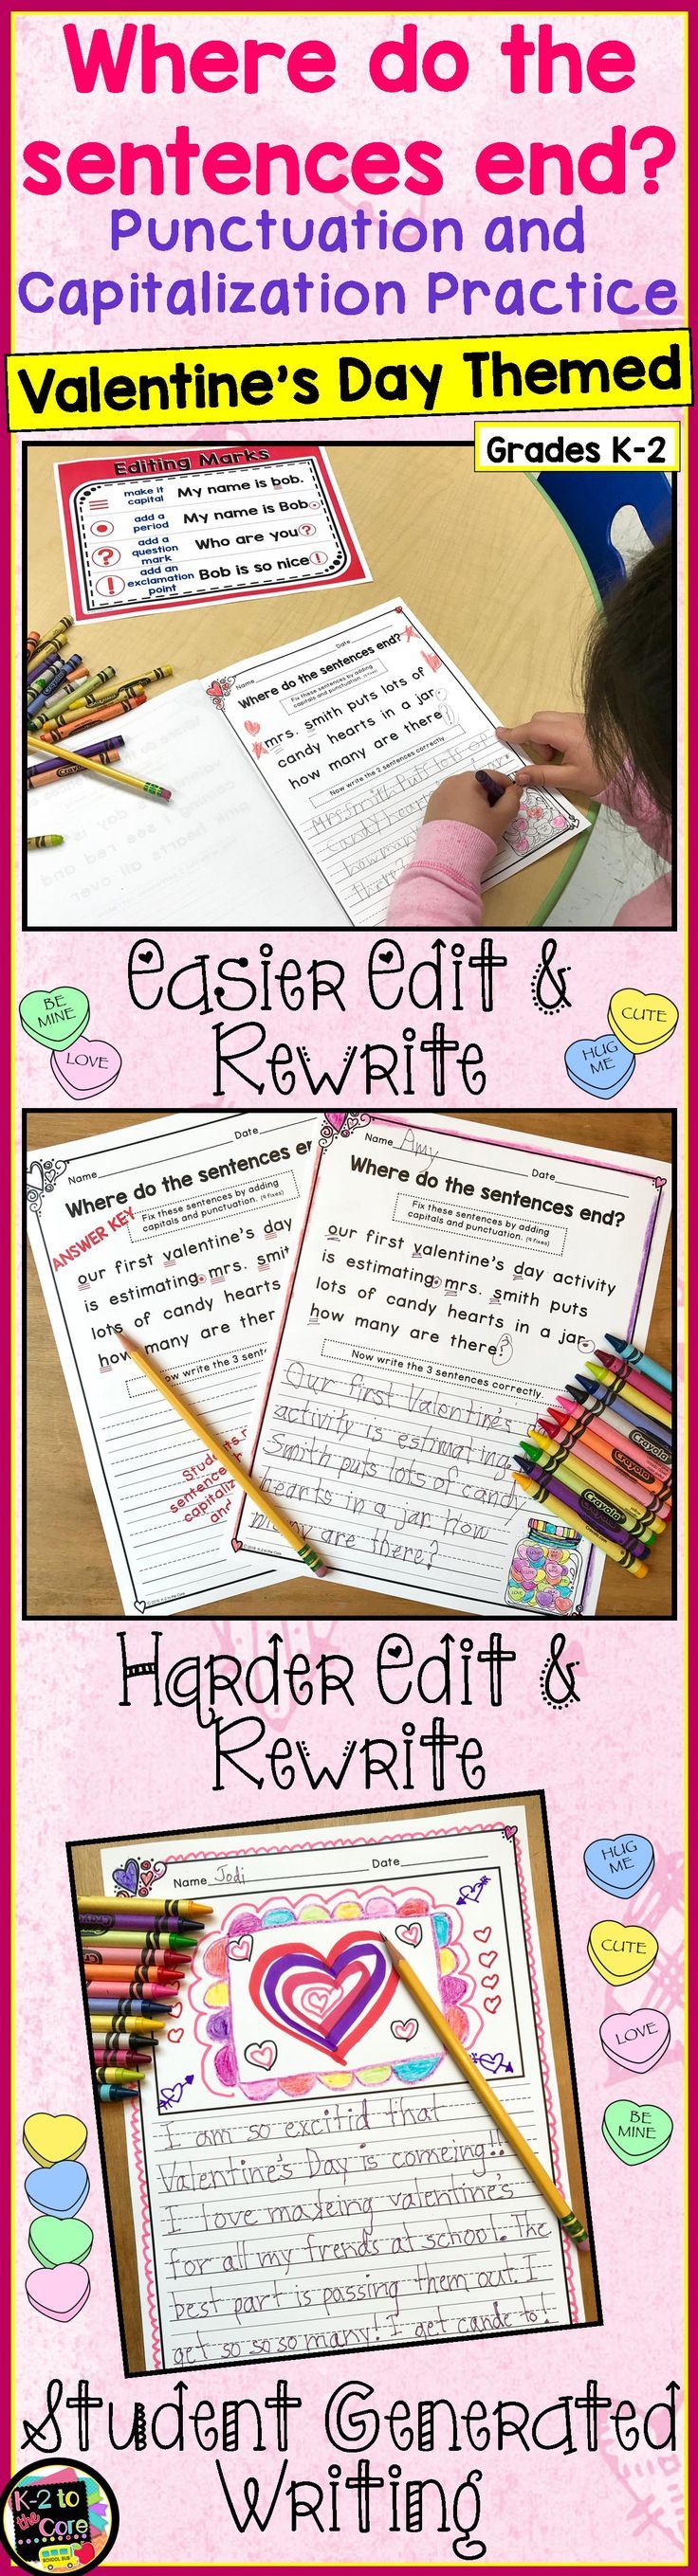 Provide your kindergarten, first, or second grade students with reading, writing, capitalization, and punctuation practice with these NO PREP differentiated (three levels) editing sheets. Each page has 2, 3, or 4 Valentine's Day themed sentences with missing capitals and punctuation. Your students' job is to figure out where the sentences end, edit the sentences, and then rewrite them with correct capitalization and punctuation. Click to find out more!